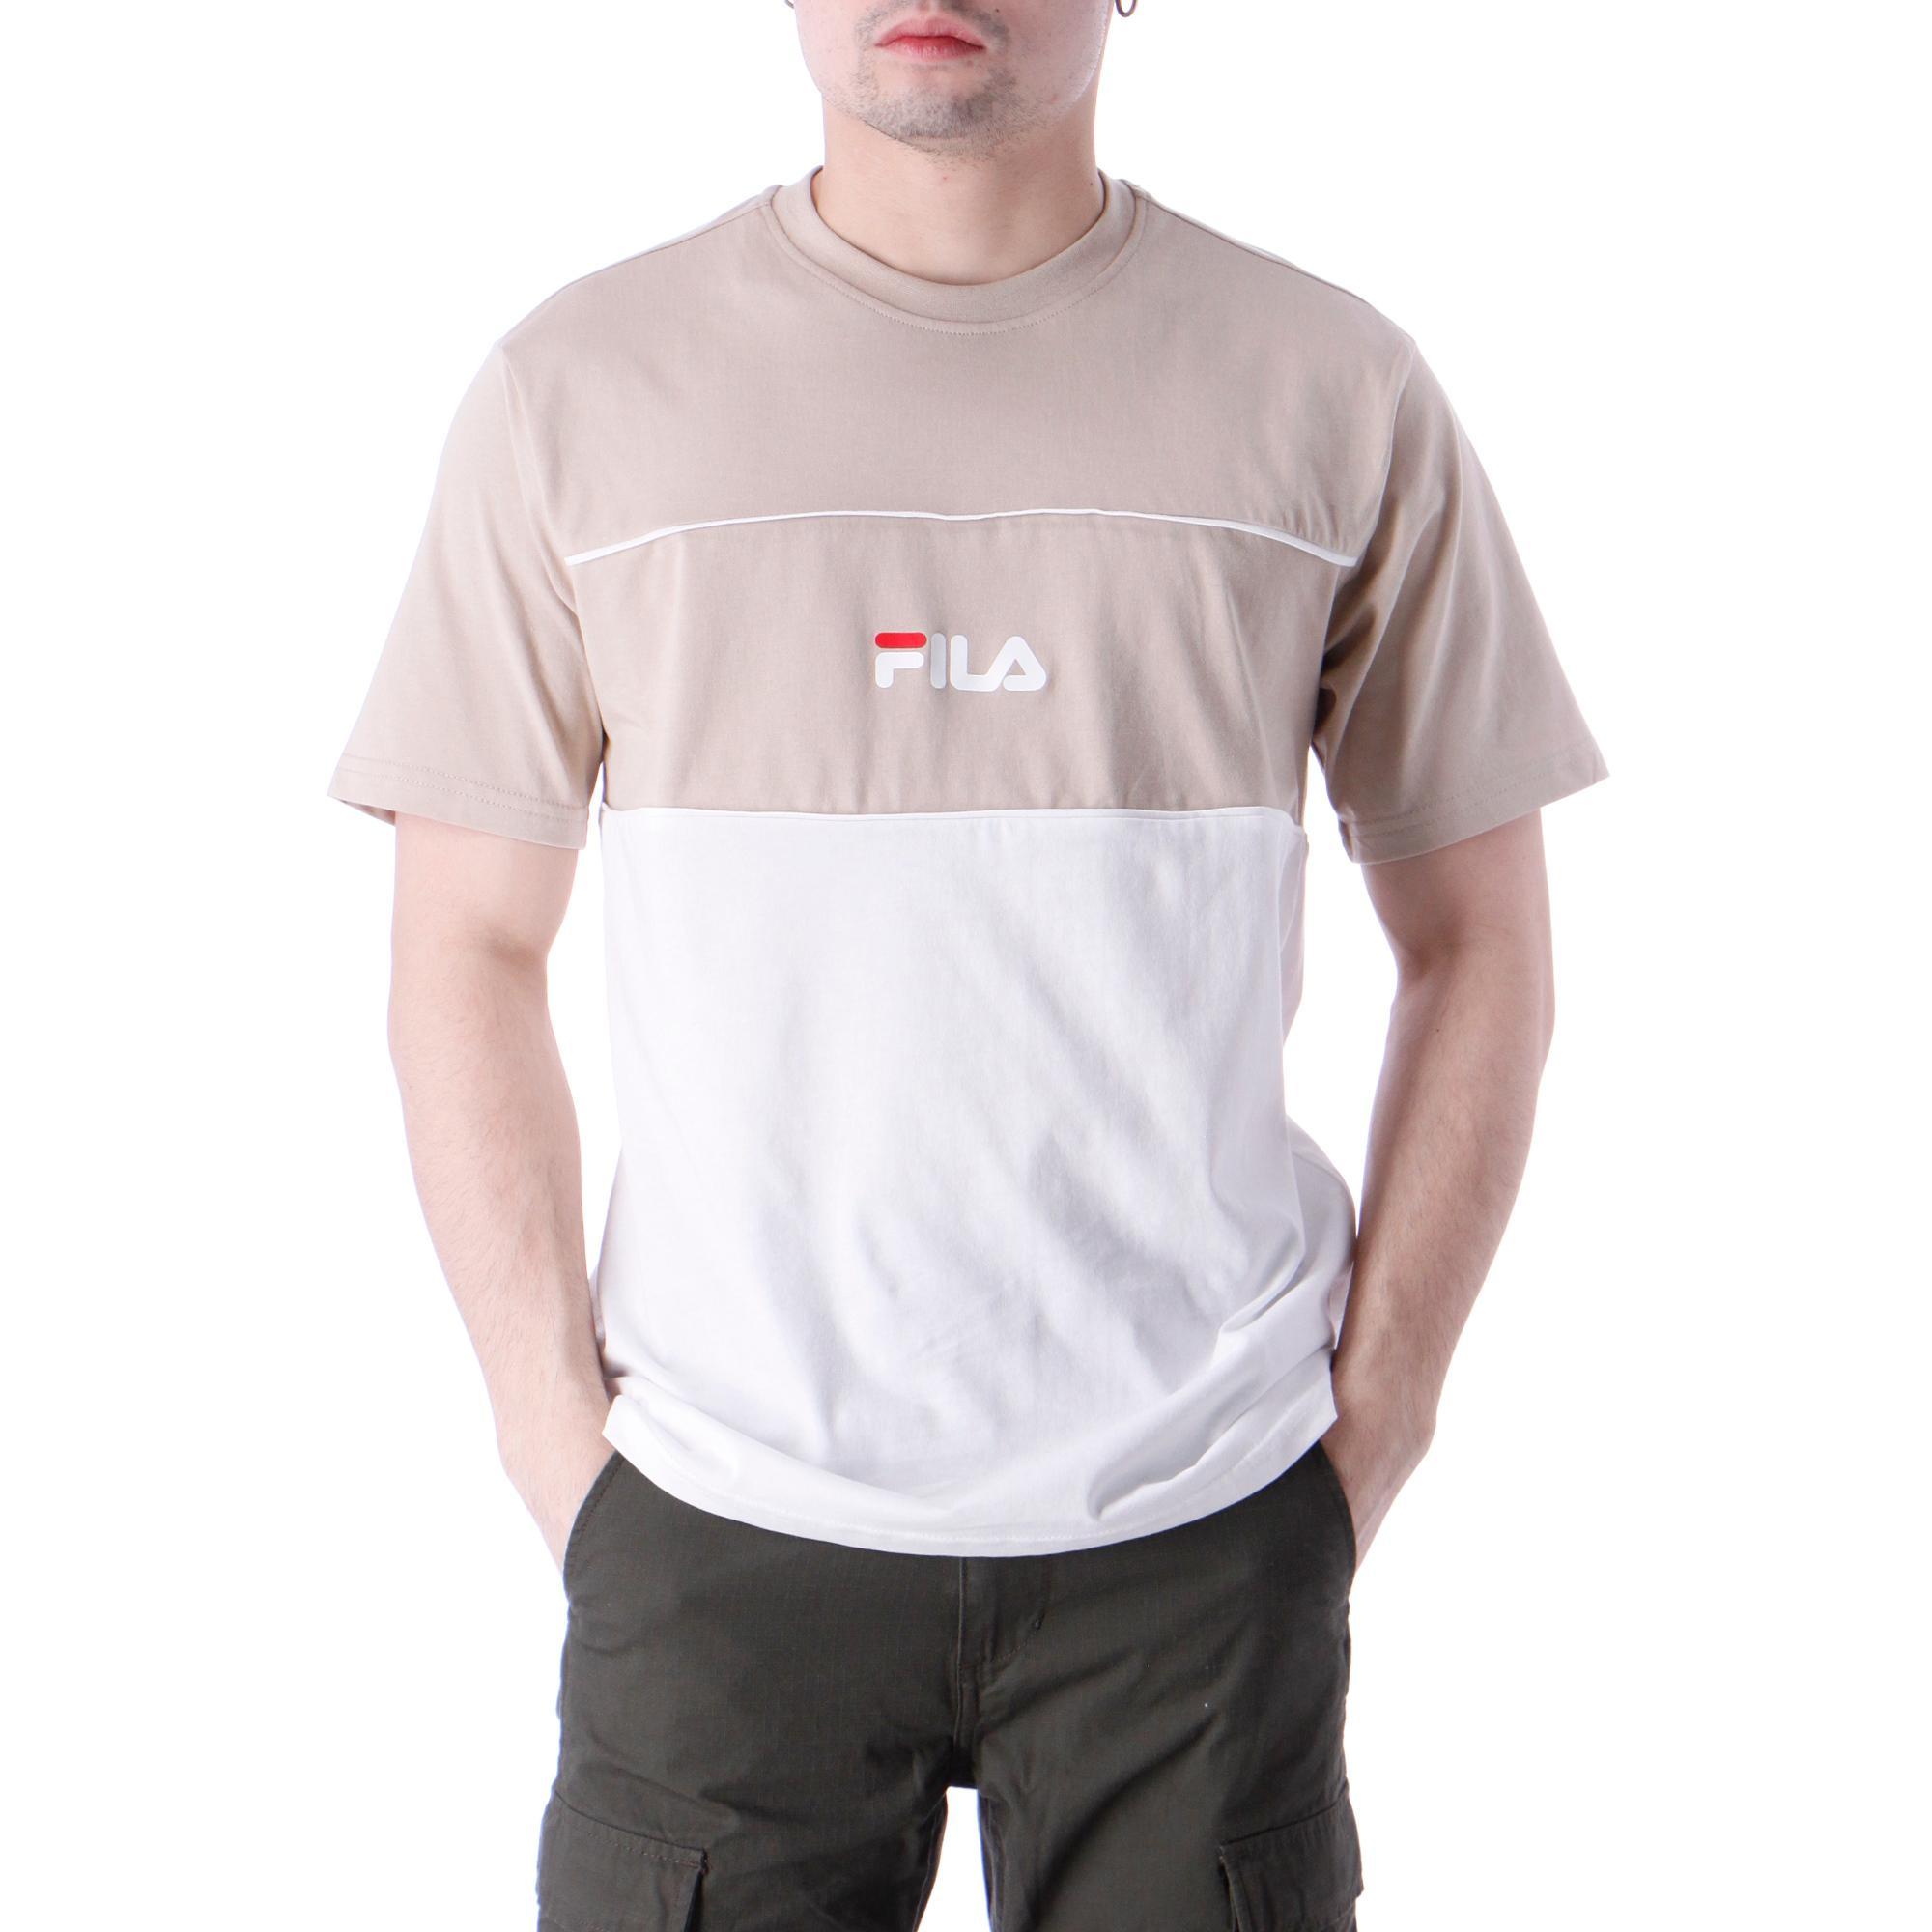 Fila Anoki Blocked Tee Oxford tan bright white